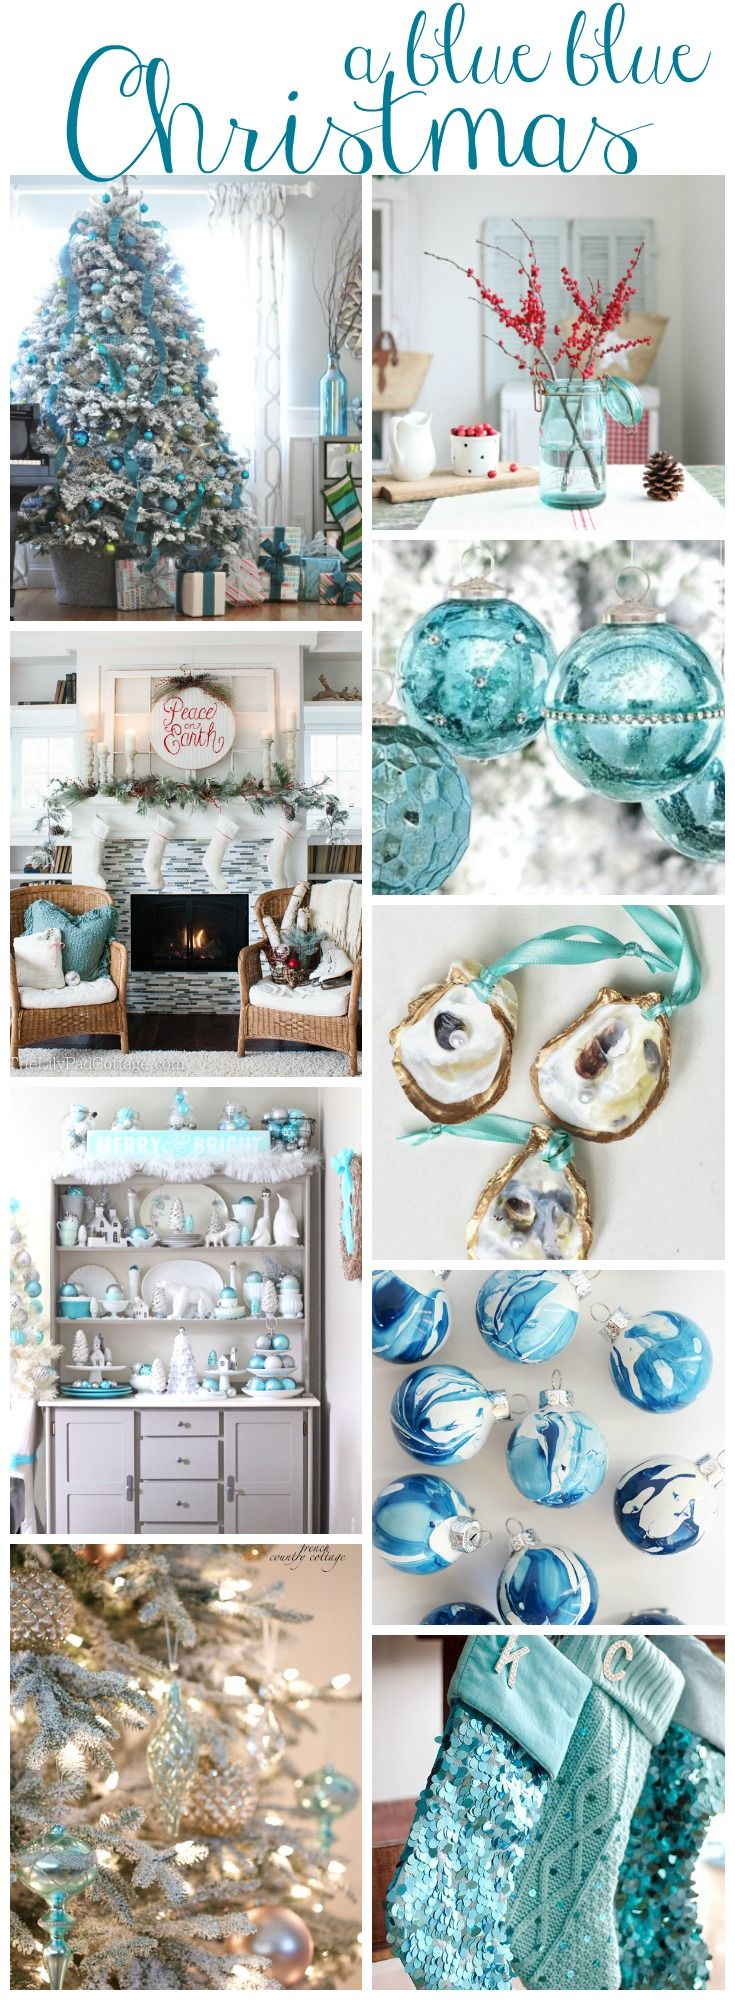 Blue christmas trees decorating ideas - A Blue Blue Christmas Style Series